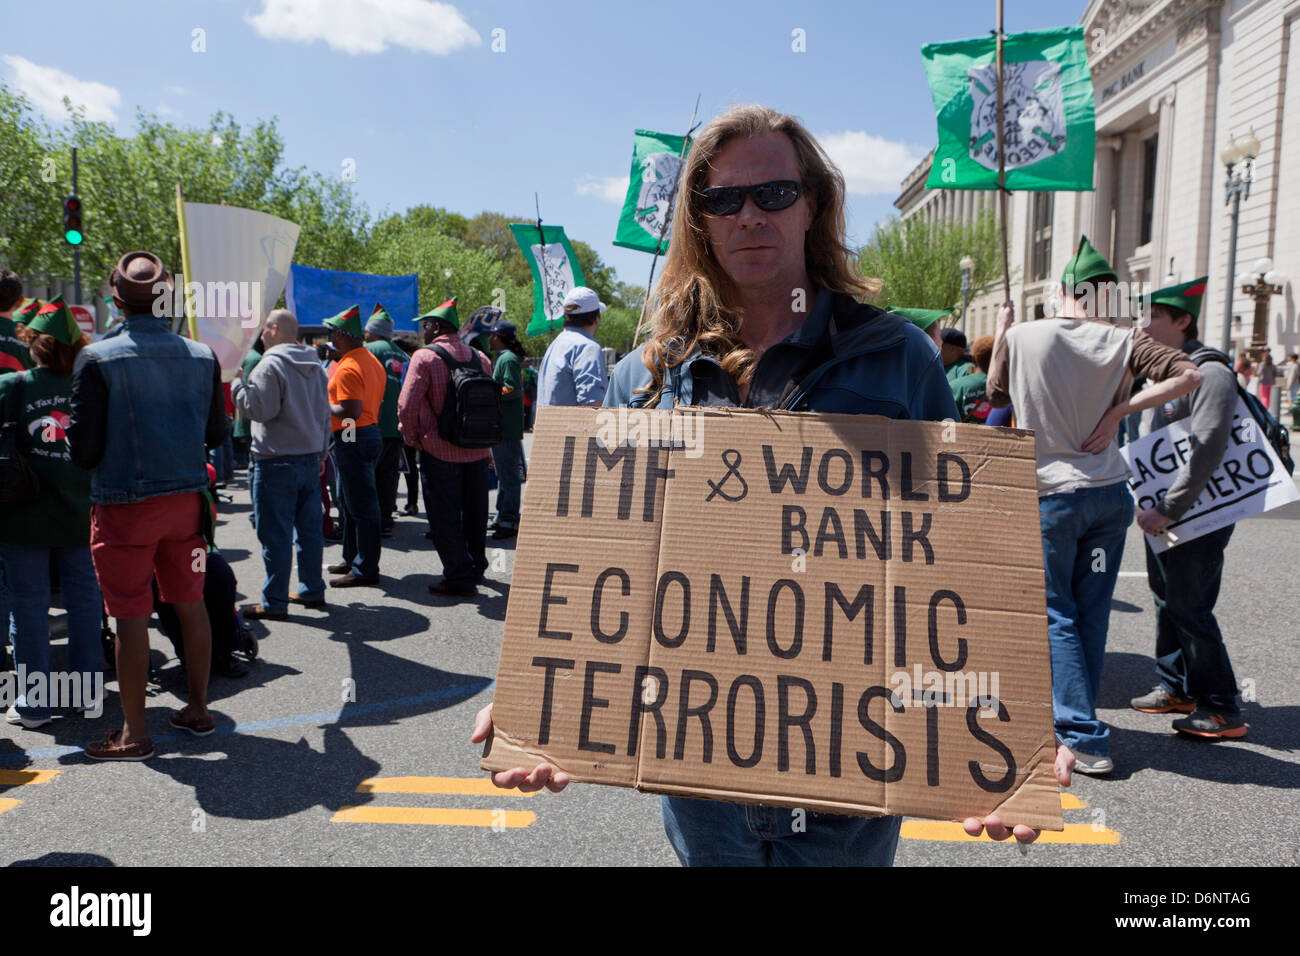 Image result for wikimedia commons  world bank imf protest